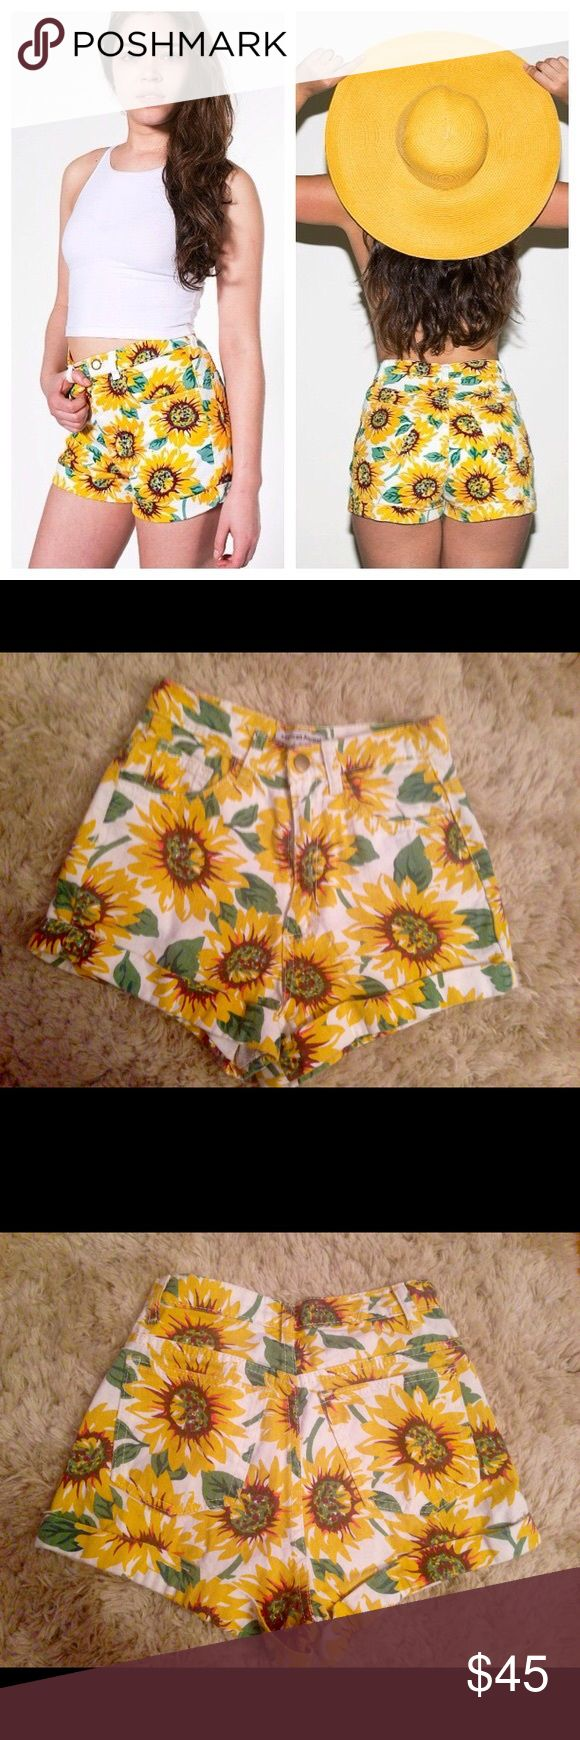 American Apparel Sunflower Shorts Only worn once, AA sunflower shorts. Size 23. American Apparel Shorts Jean Shorts